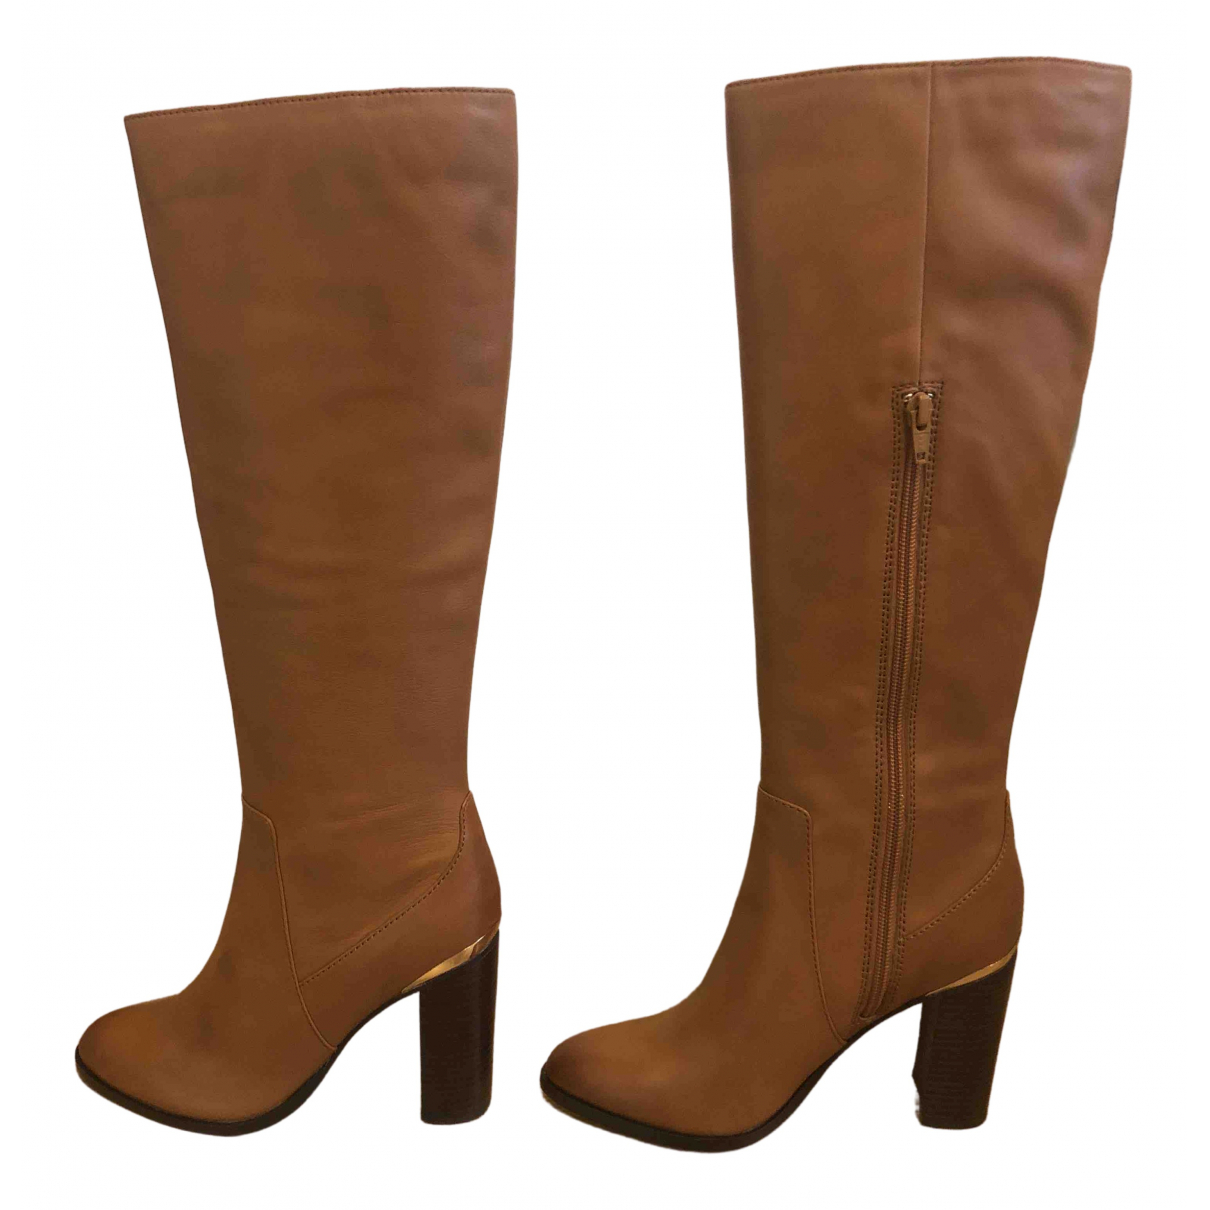 River Island N Camel Leather Boots for Women 36 EU